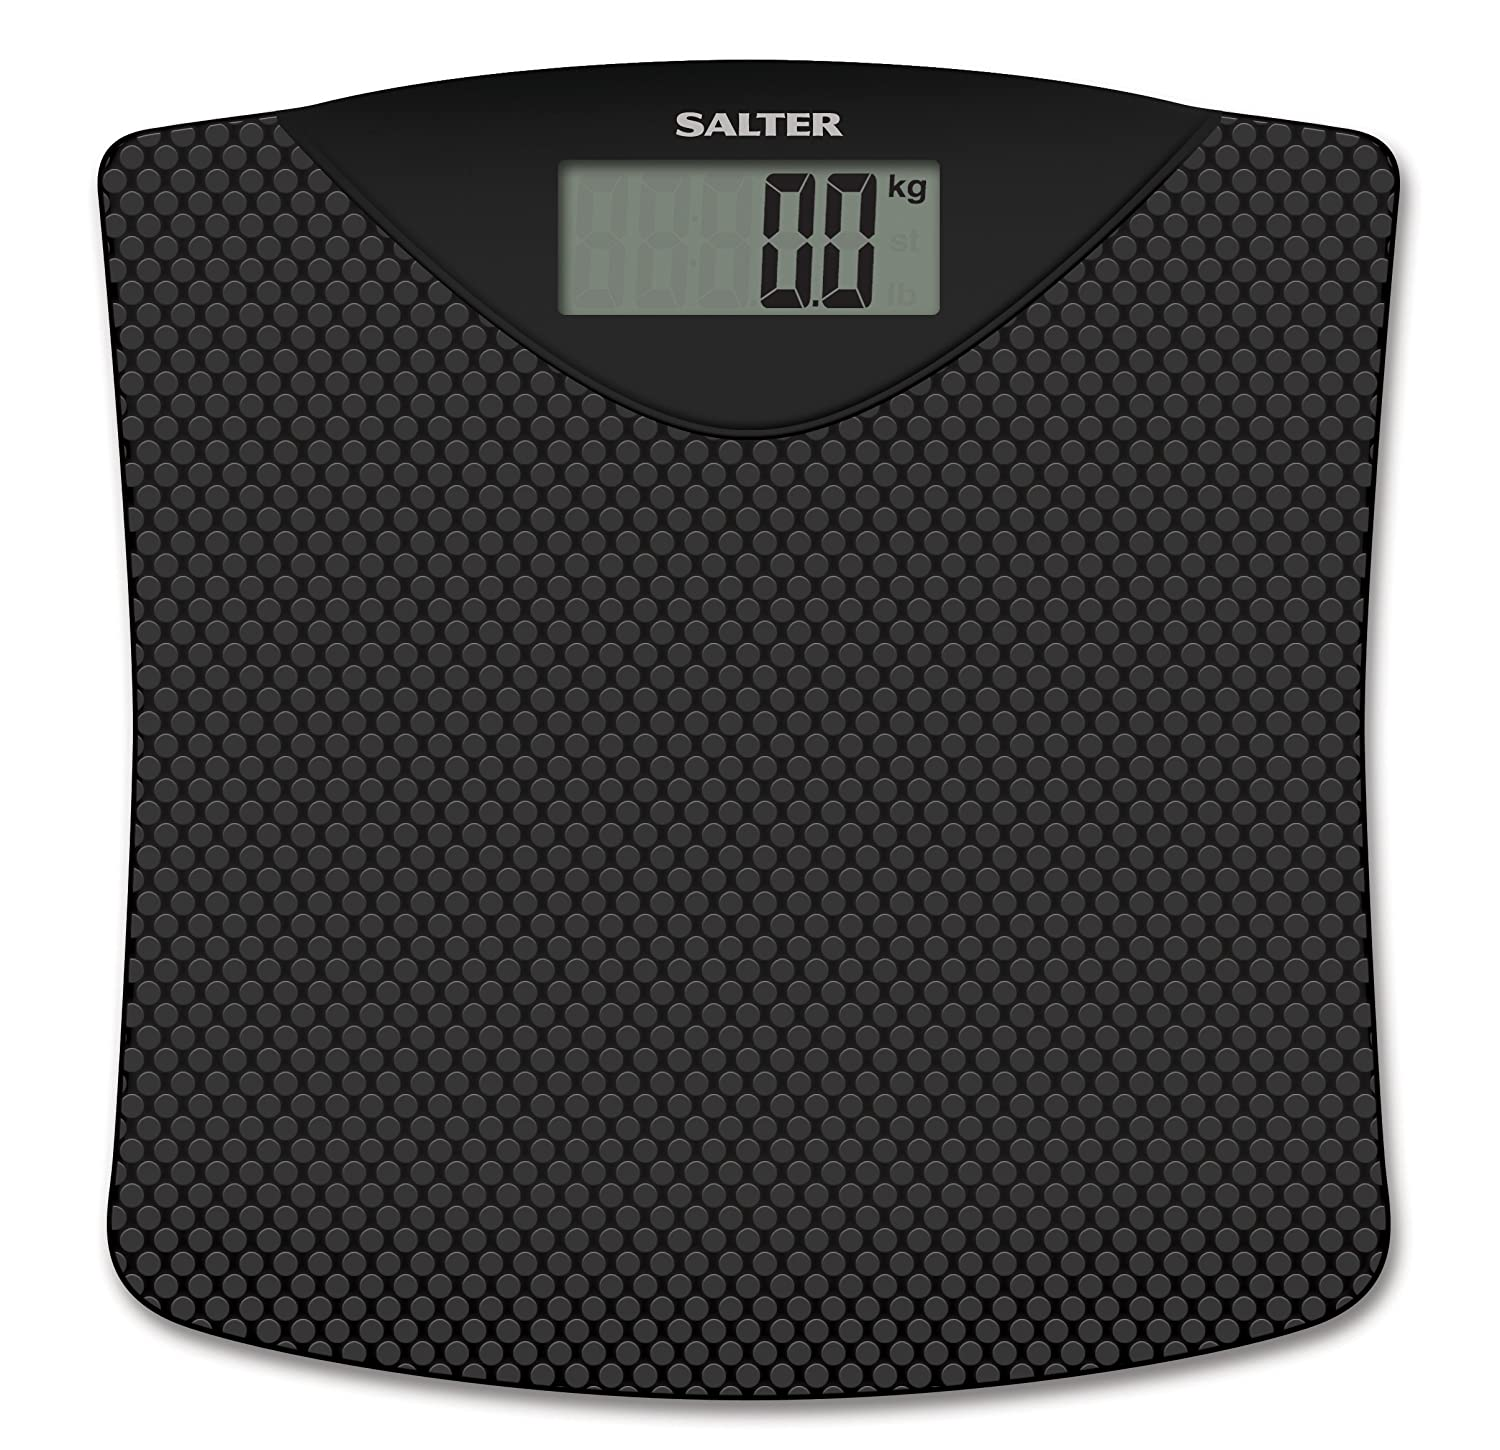 Salter 9071 BK3R Rubberized Platform Electronic Bathroom Scale